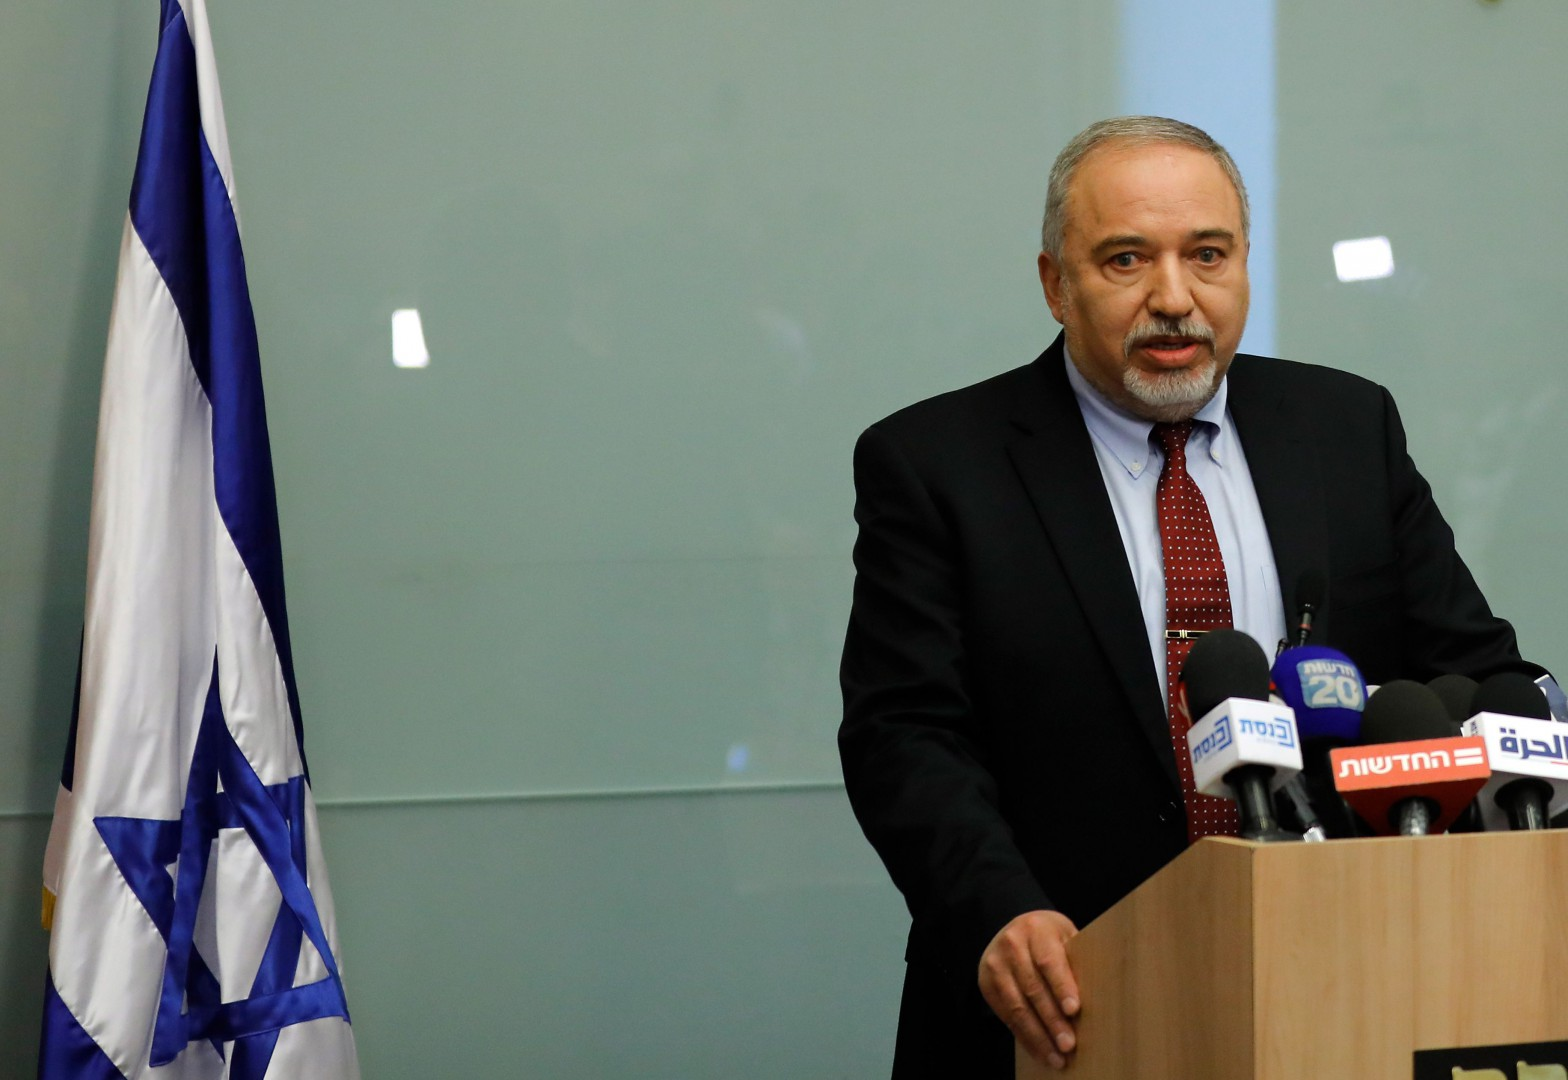 Israeli Defence Minister Avigdor Lieberman speaks during a press conference at the Knesset in Jerusalem on November 14, 2018. - Lieberman announced his resignation today and called for early elections after a sharp disagreement over a Gaza ceasefire deal, throwing the government into turmoil. (Photo by Menahem KAHANA / AFP)